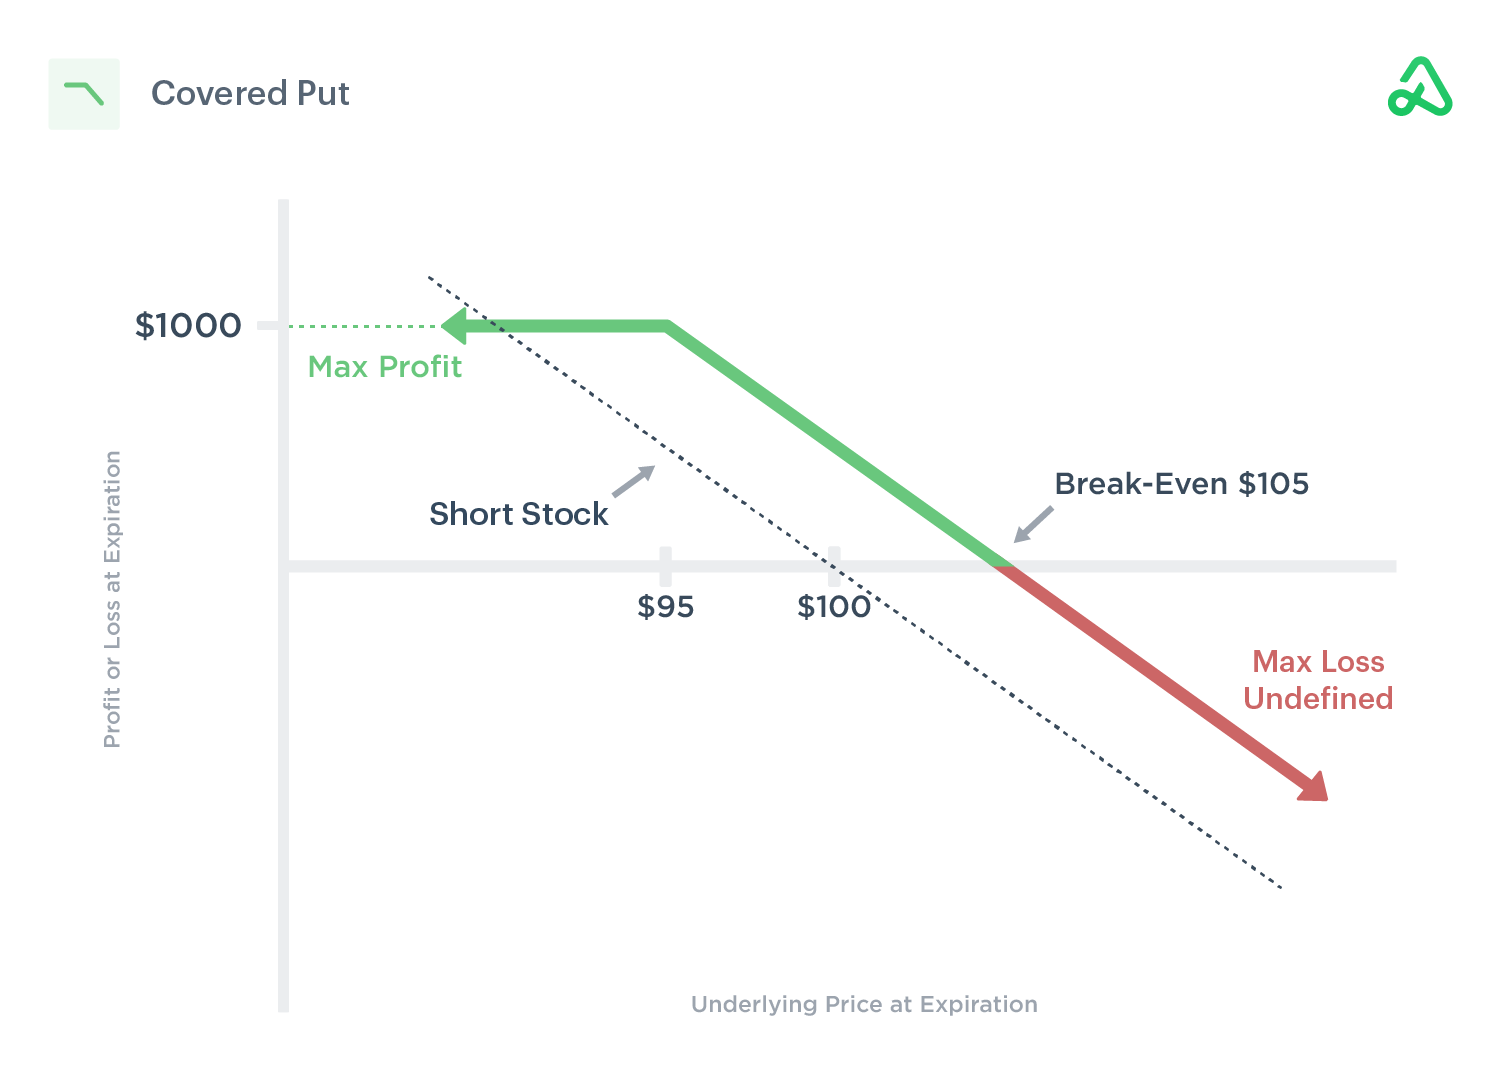 Covered put payoff diagram showing max profit, max loss, and break-even points